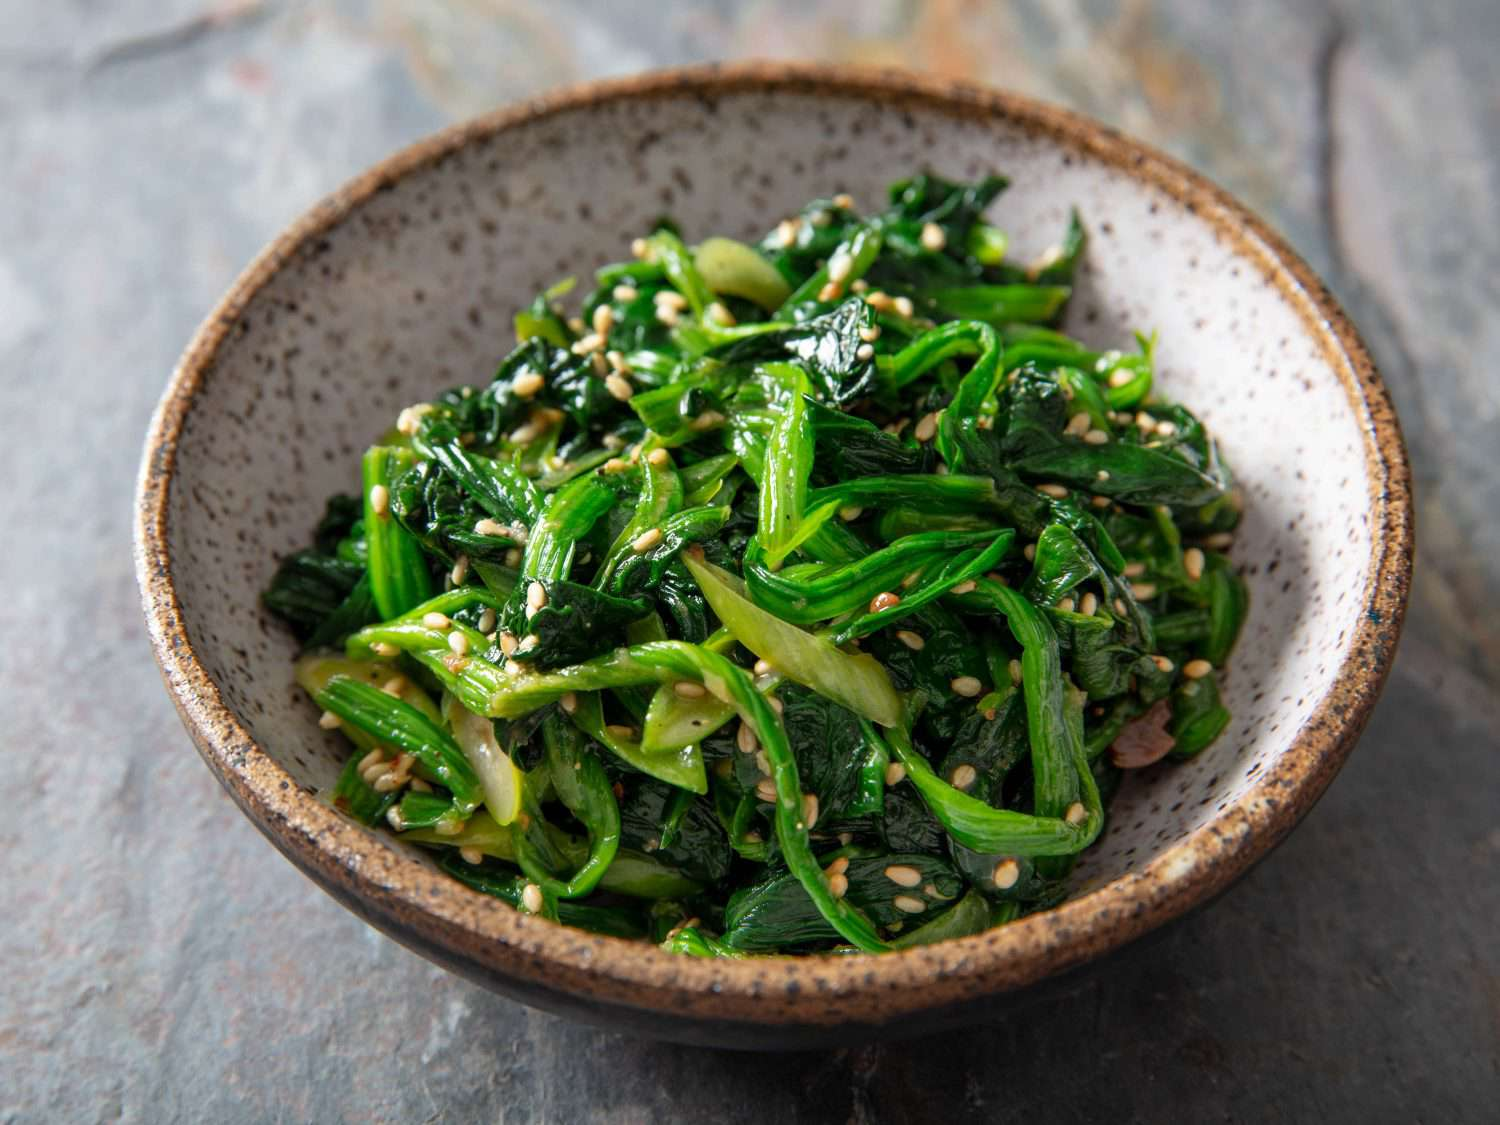 Closeup front view of a serving side dish of marinated spinach banchan.